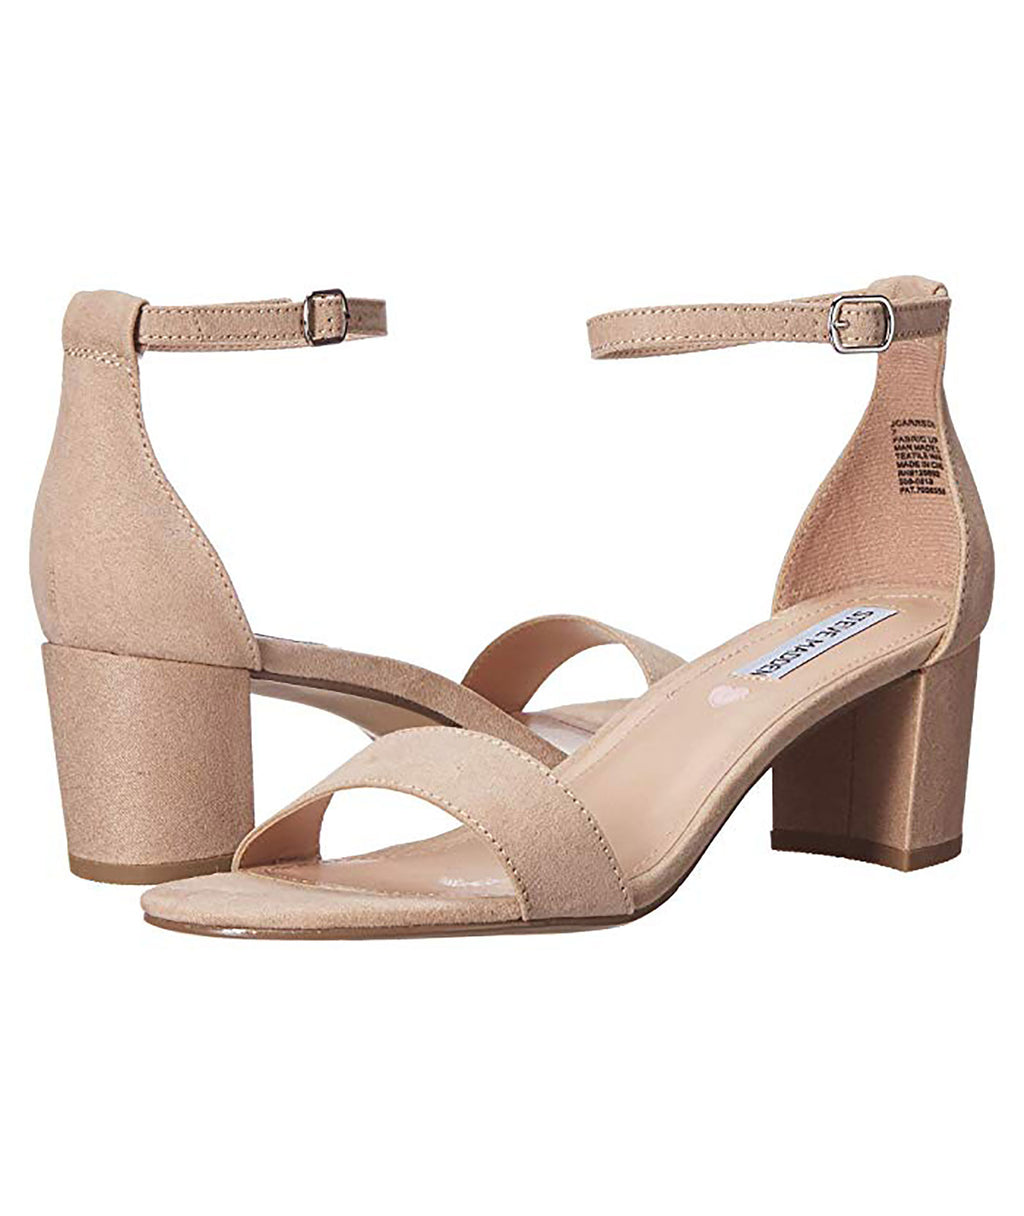 Steve Madden Girls JCarrson Blush Dress Shoes